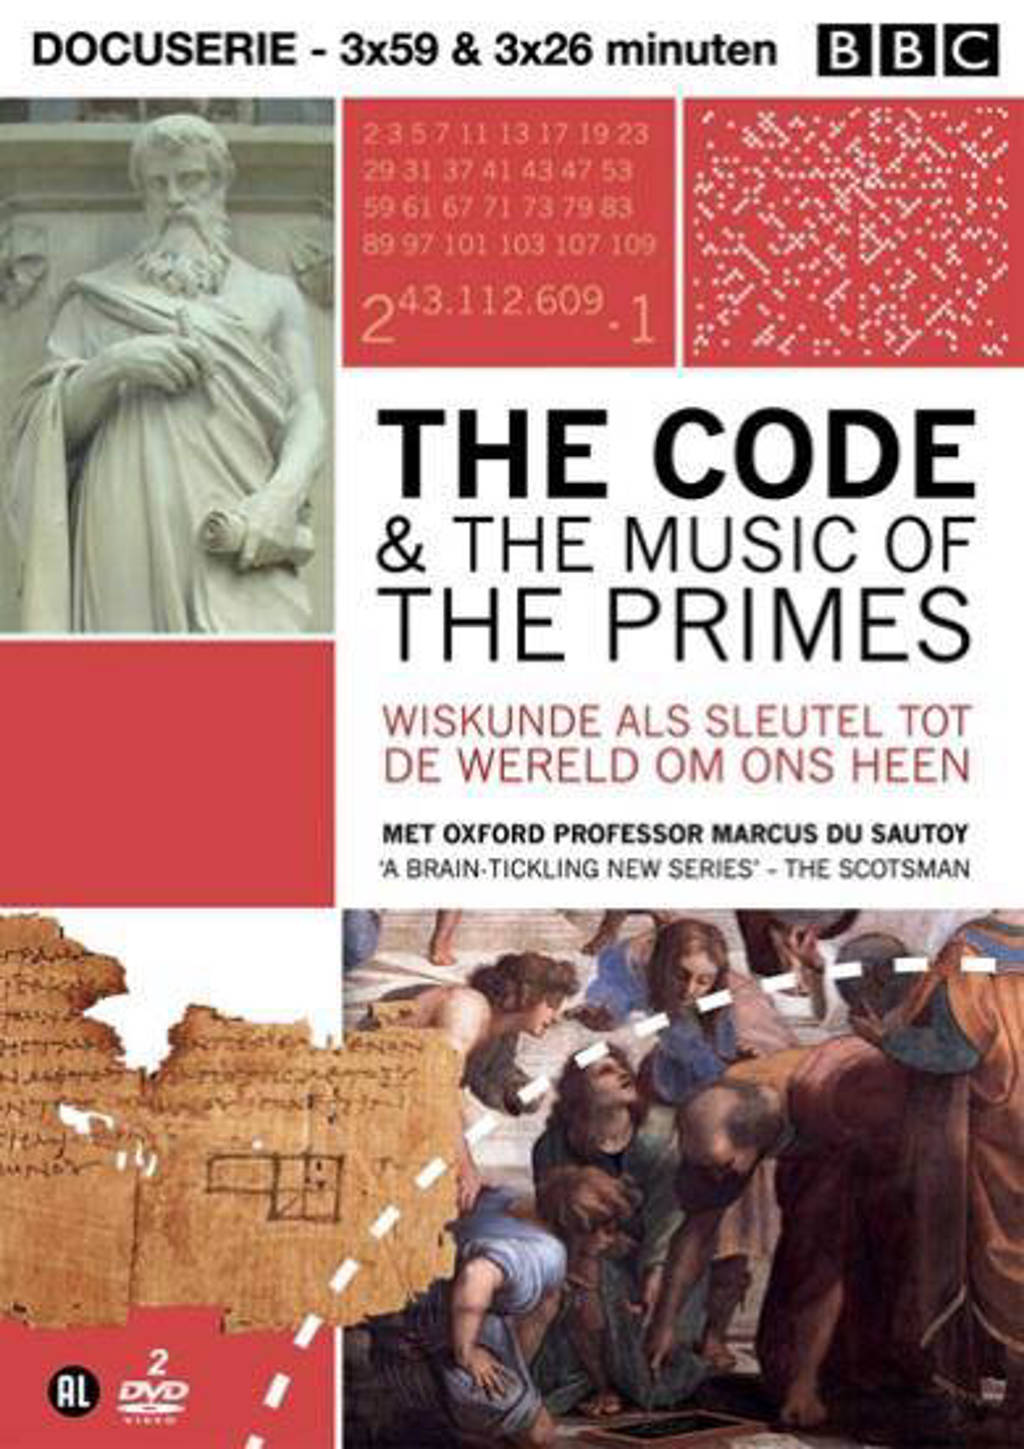 Code & the music of the primes (DVD)